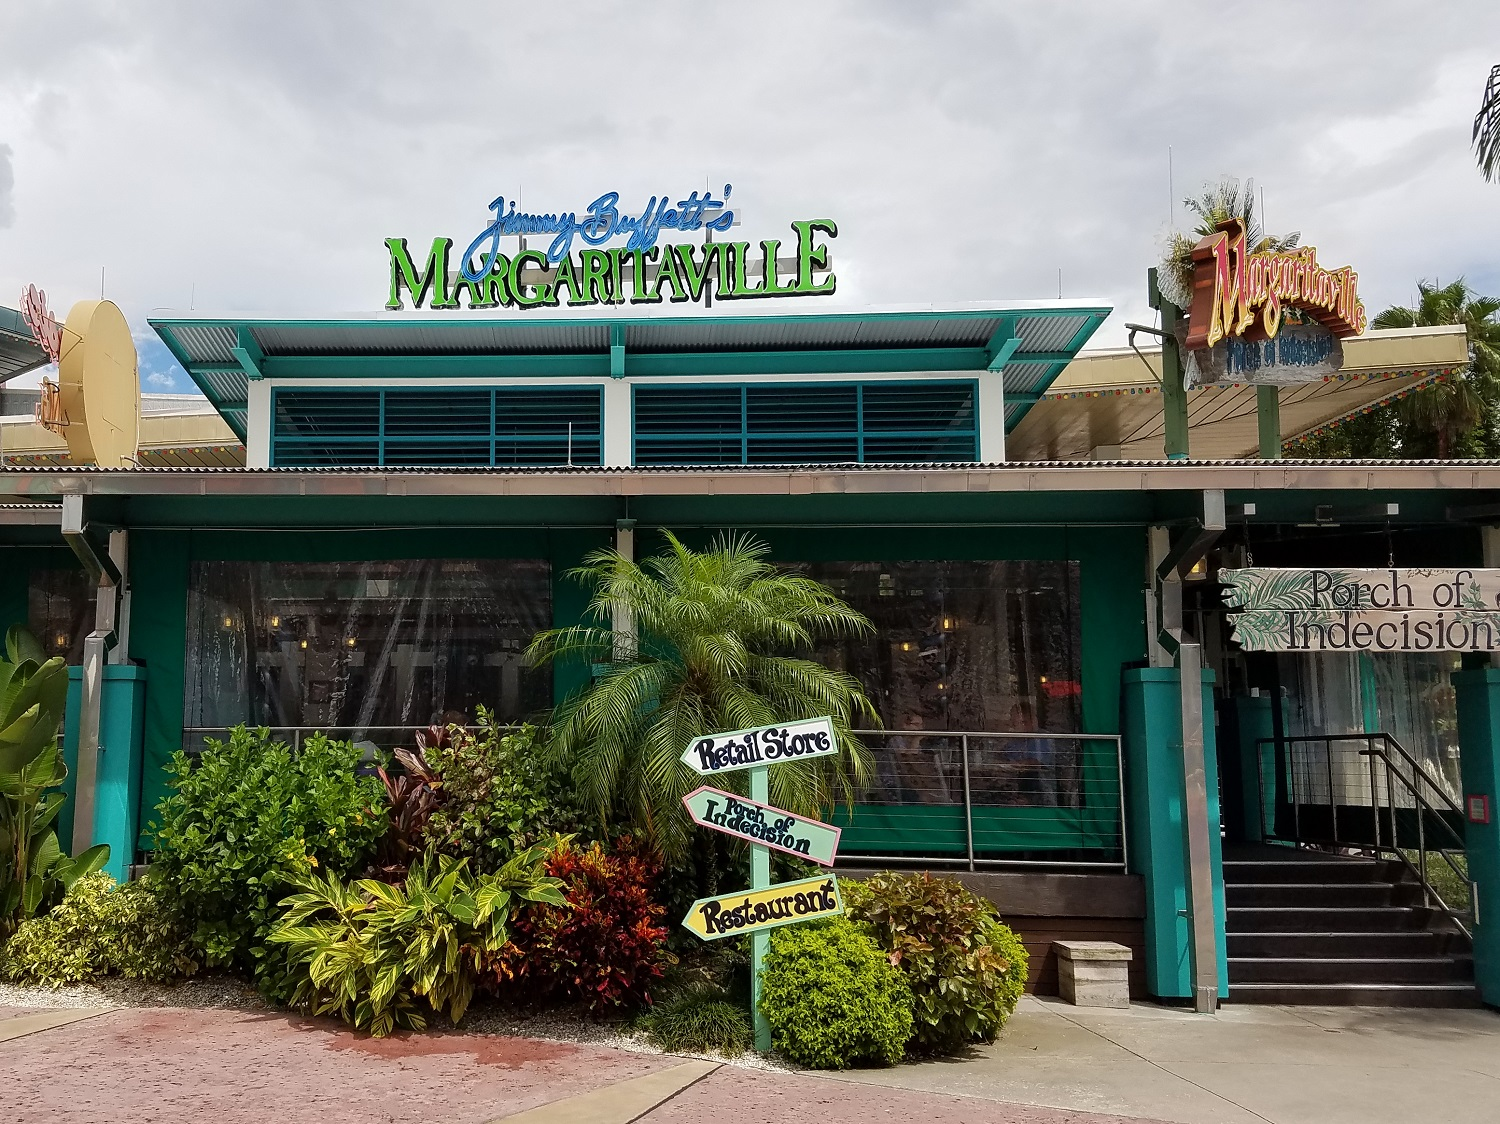 Porch of Indecision Entrance at Jimmy Buffet Margaritaville